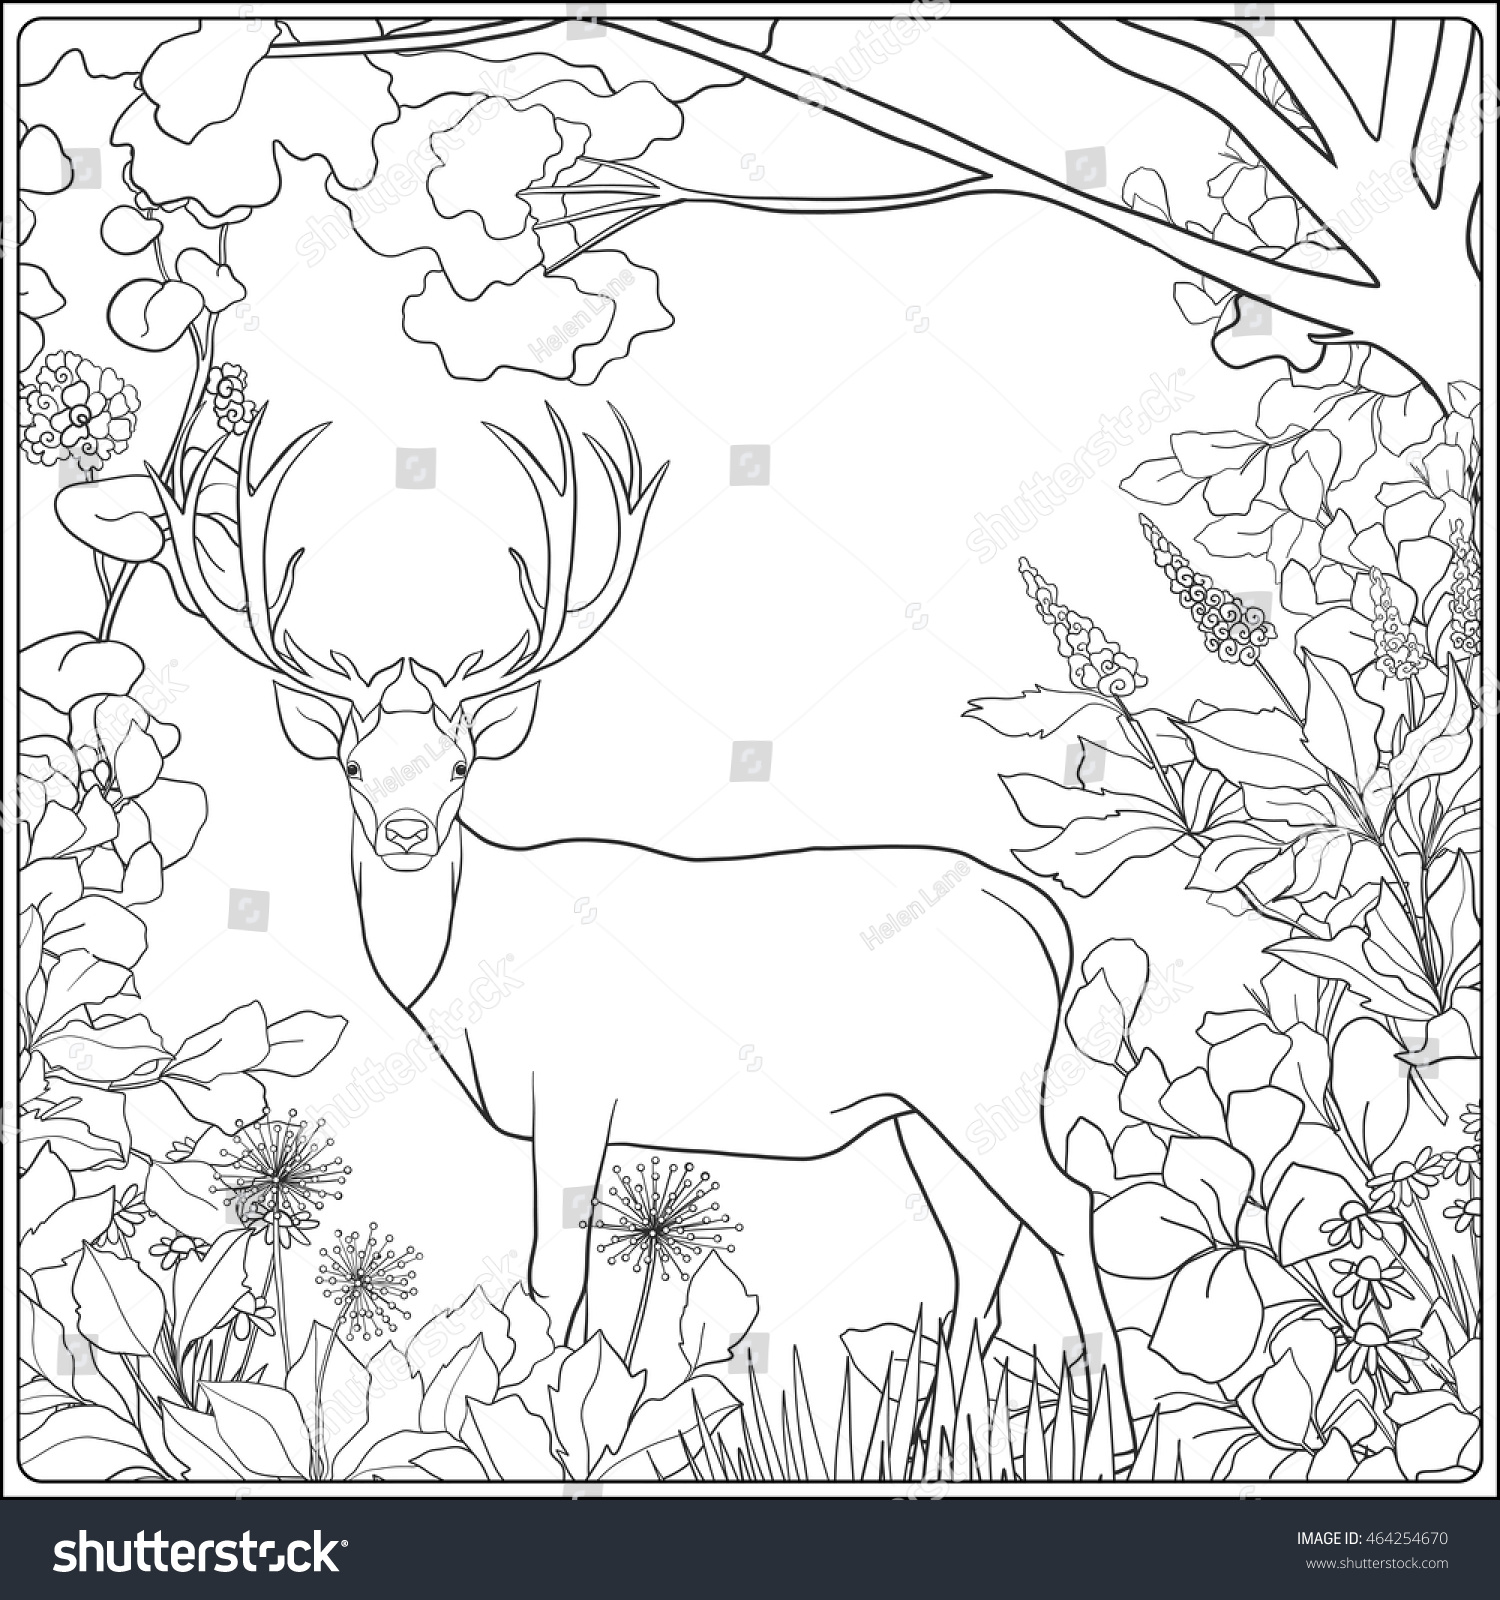 coloring page deer forest coloring book stock vector 464254670